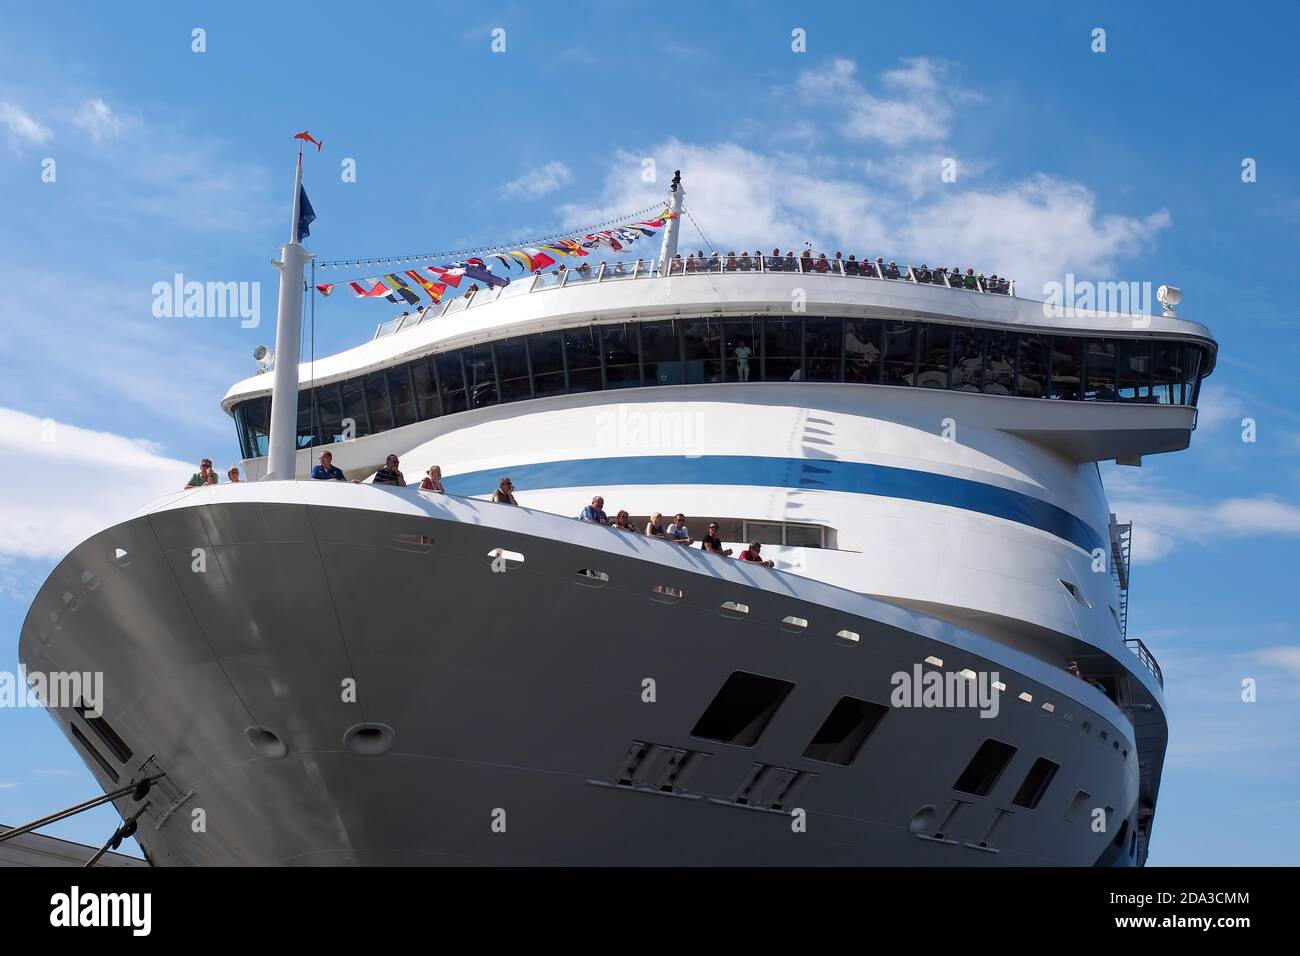 Travel. Bow of a cruise ship anchored in the harbor. Stock Photo